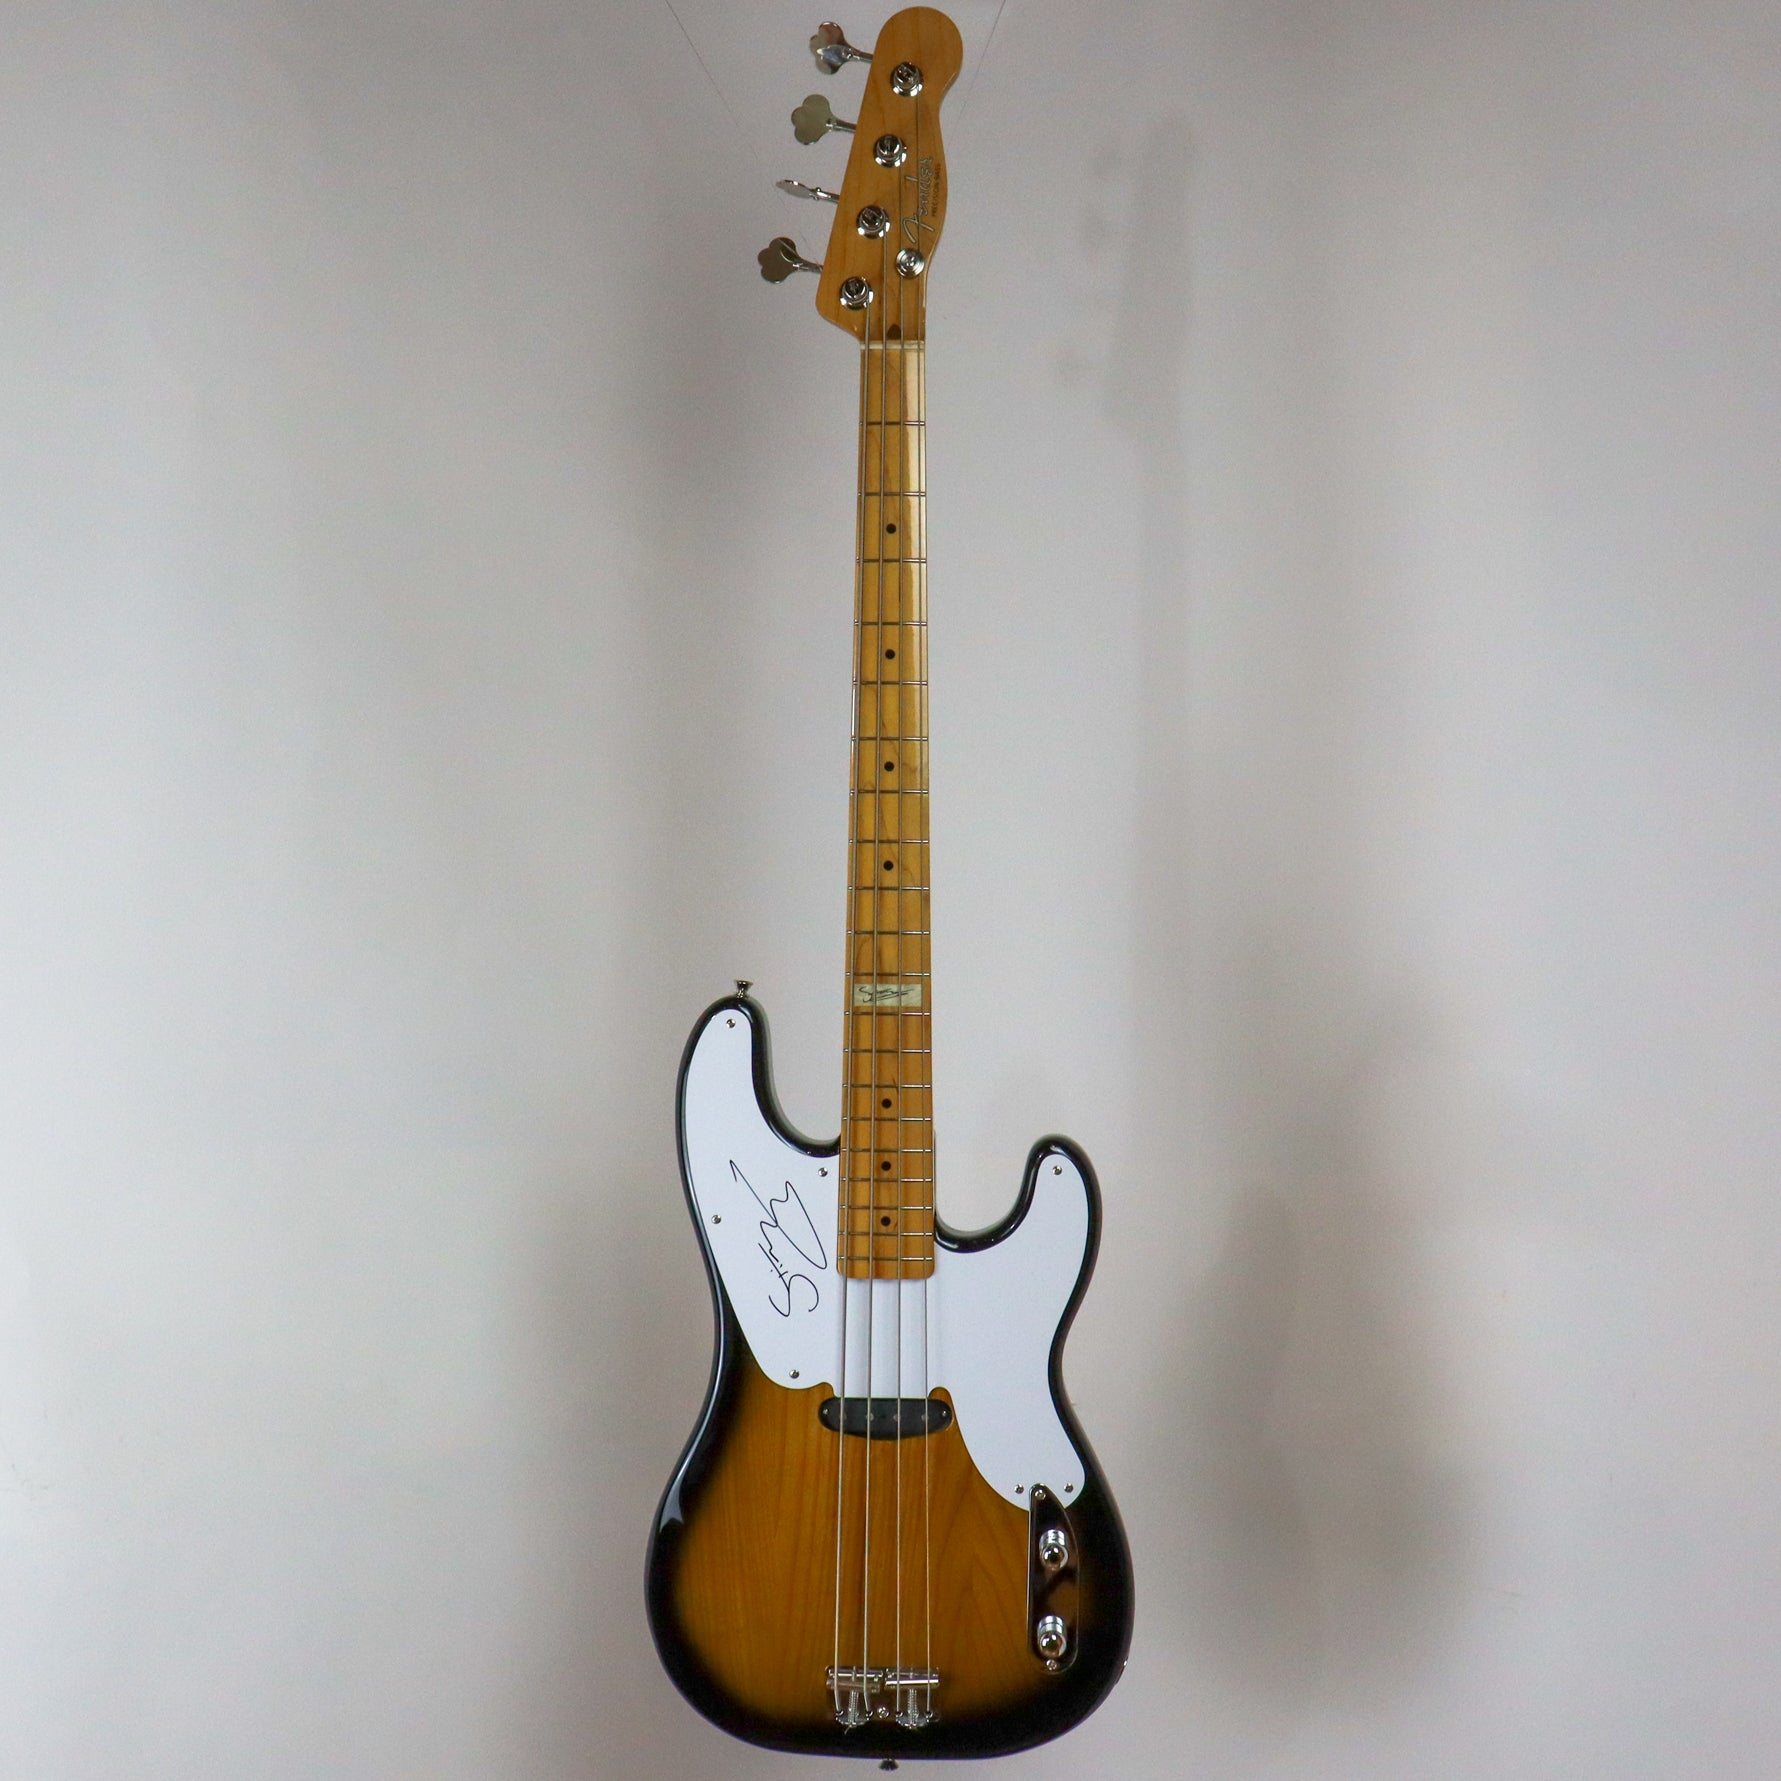 Fender 1995-96 Sting Signature Precision Bass, signed by Sting, made in Japan w/gig bag U061899